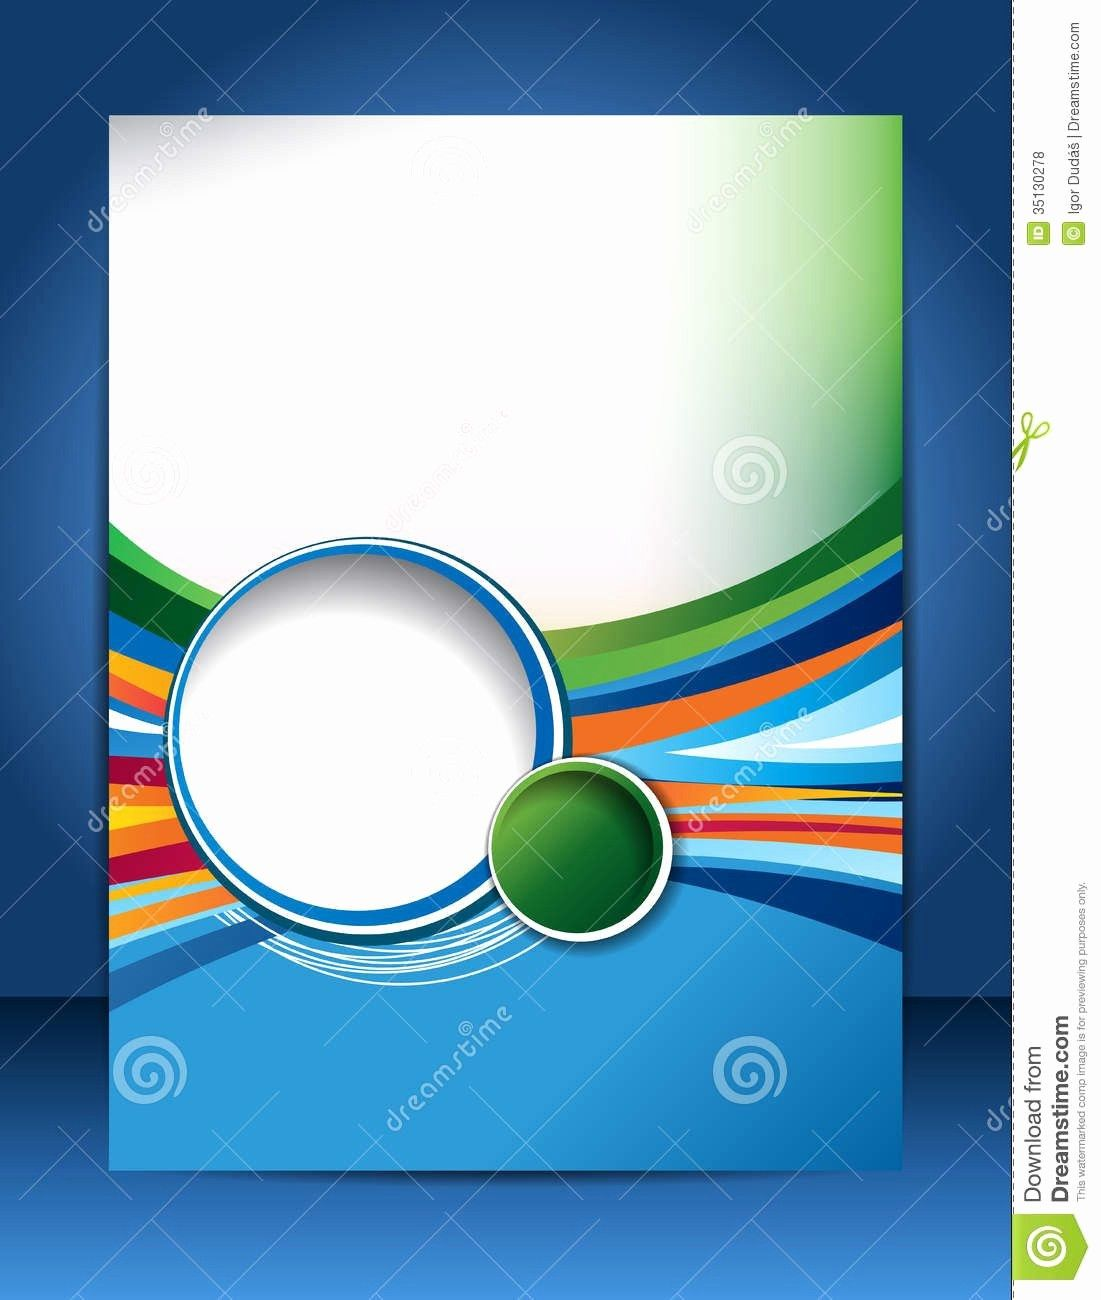 Best Of Brochure Background Design Templates Free Business Card Layout Templates Brochure Design Template Business Cards Layout